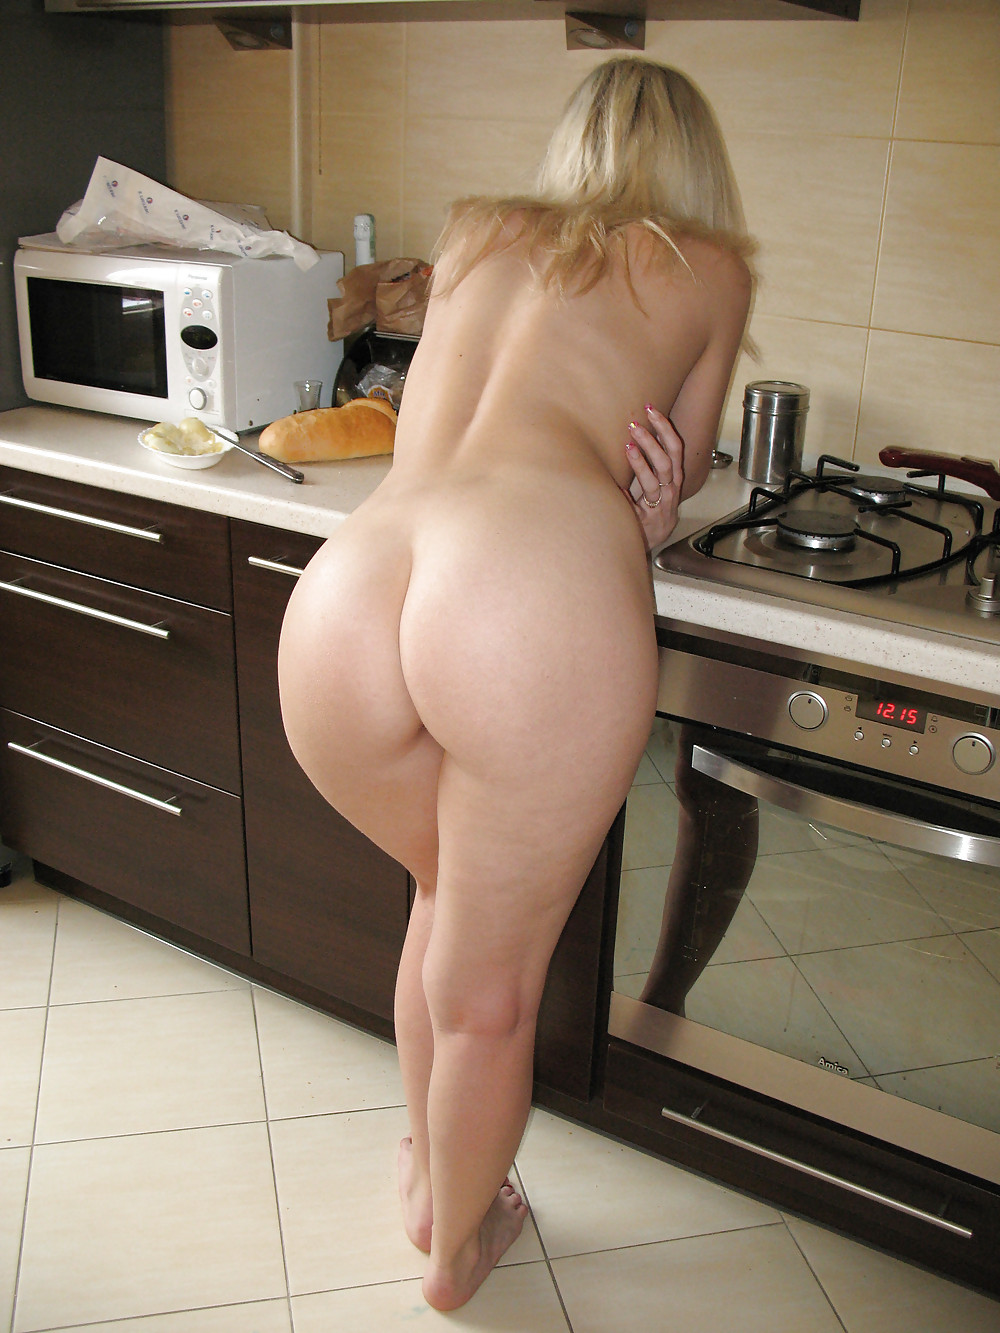 man-my-pics-bare-ass-wives-private-nude-pics